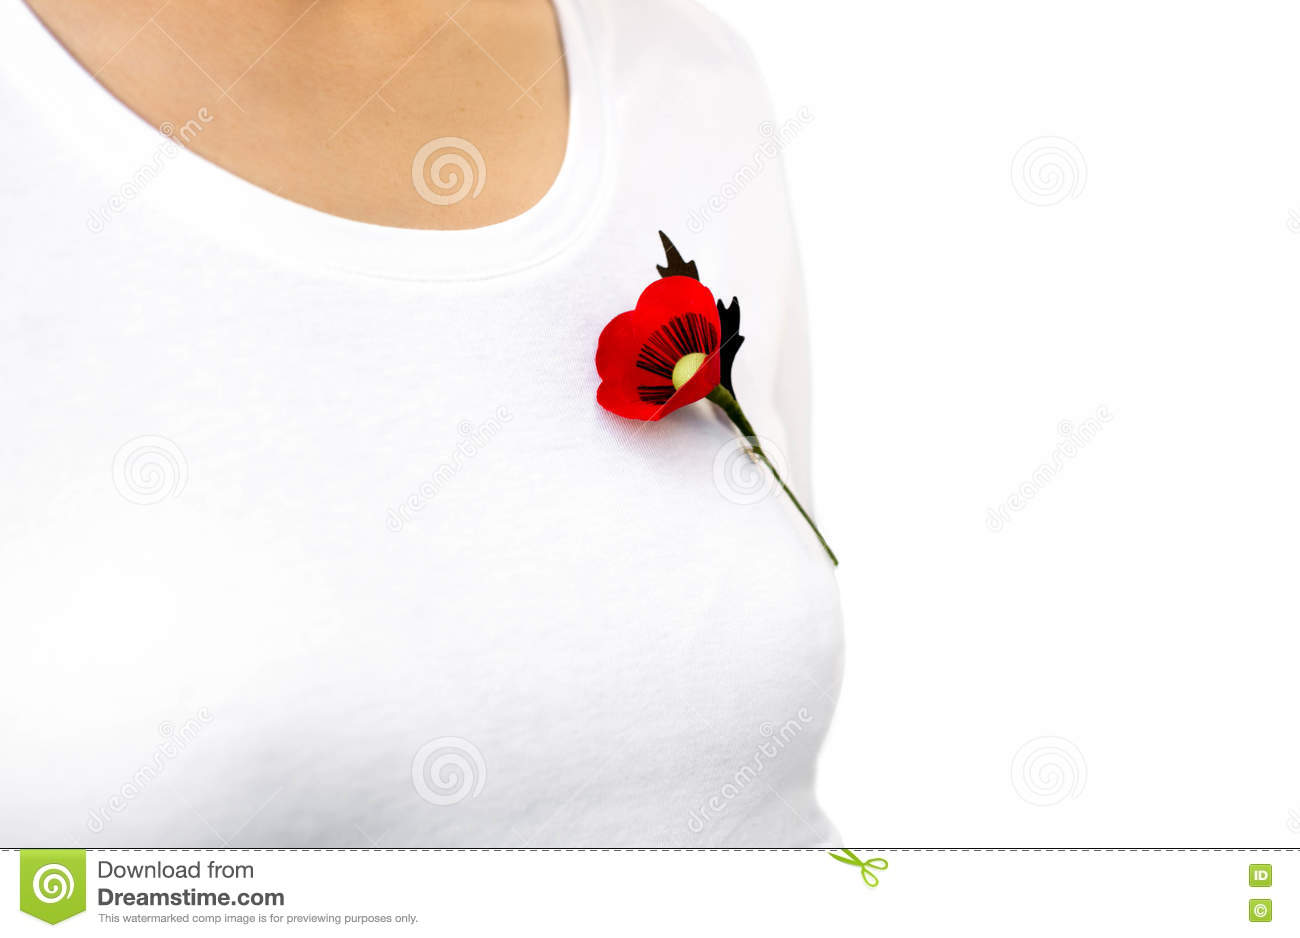 Red Poppy Lapel Pin On Woman T- Shirt Stock Photo - Image of